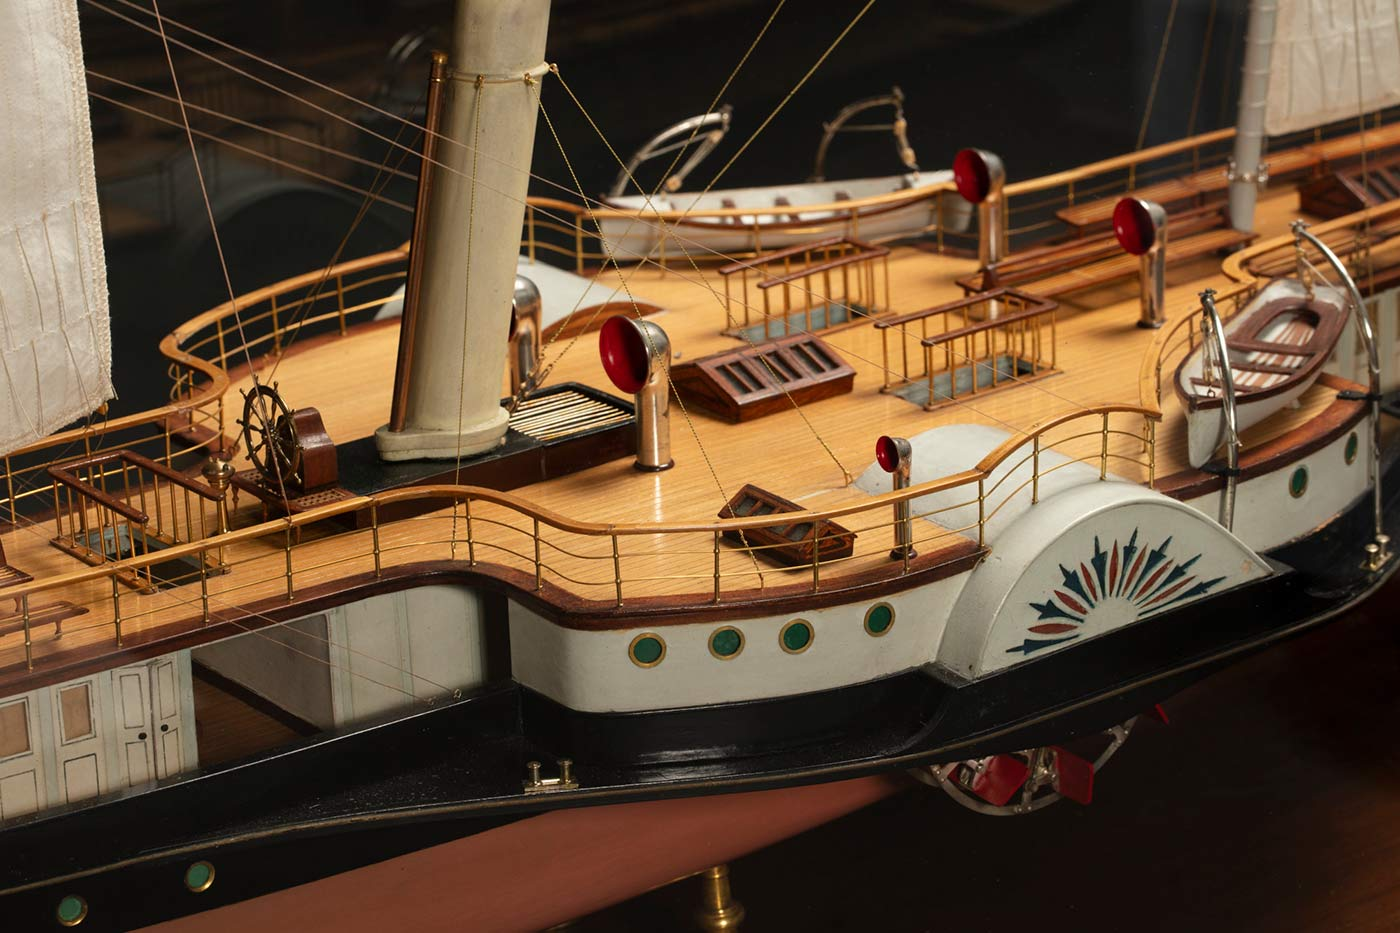 Detail of a model of a ship featuring the deck. - click to view larger image